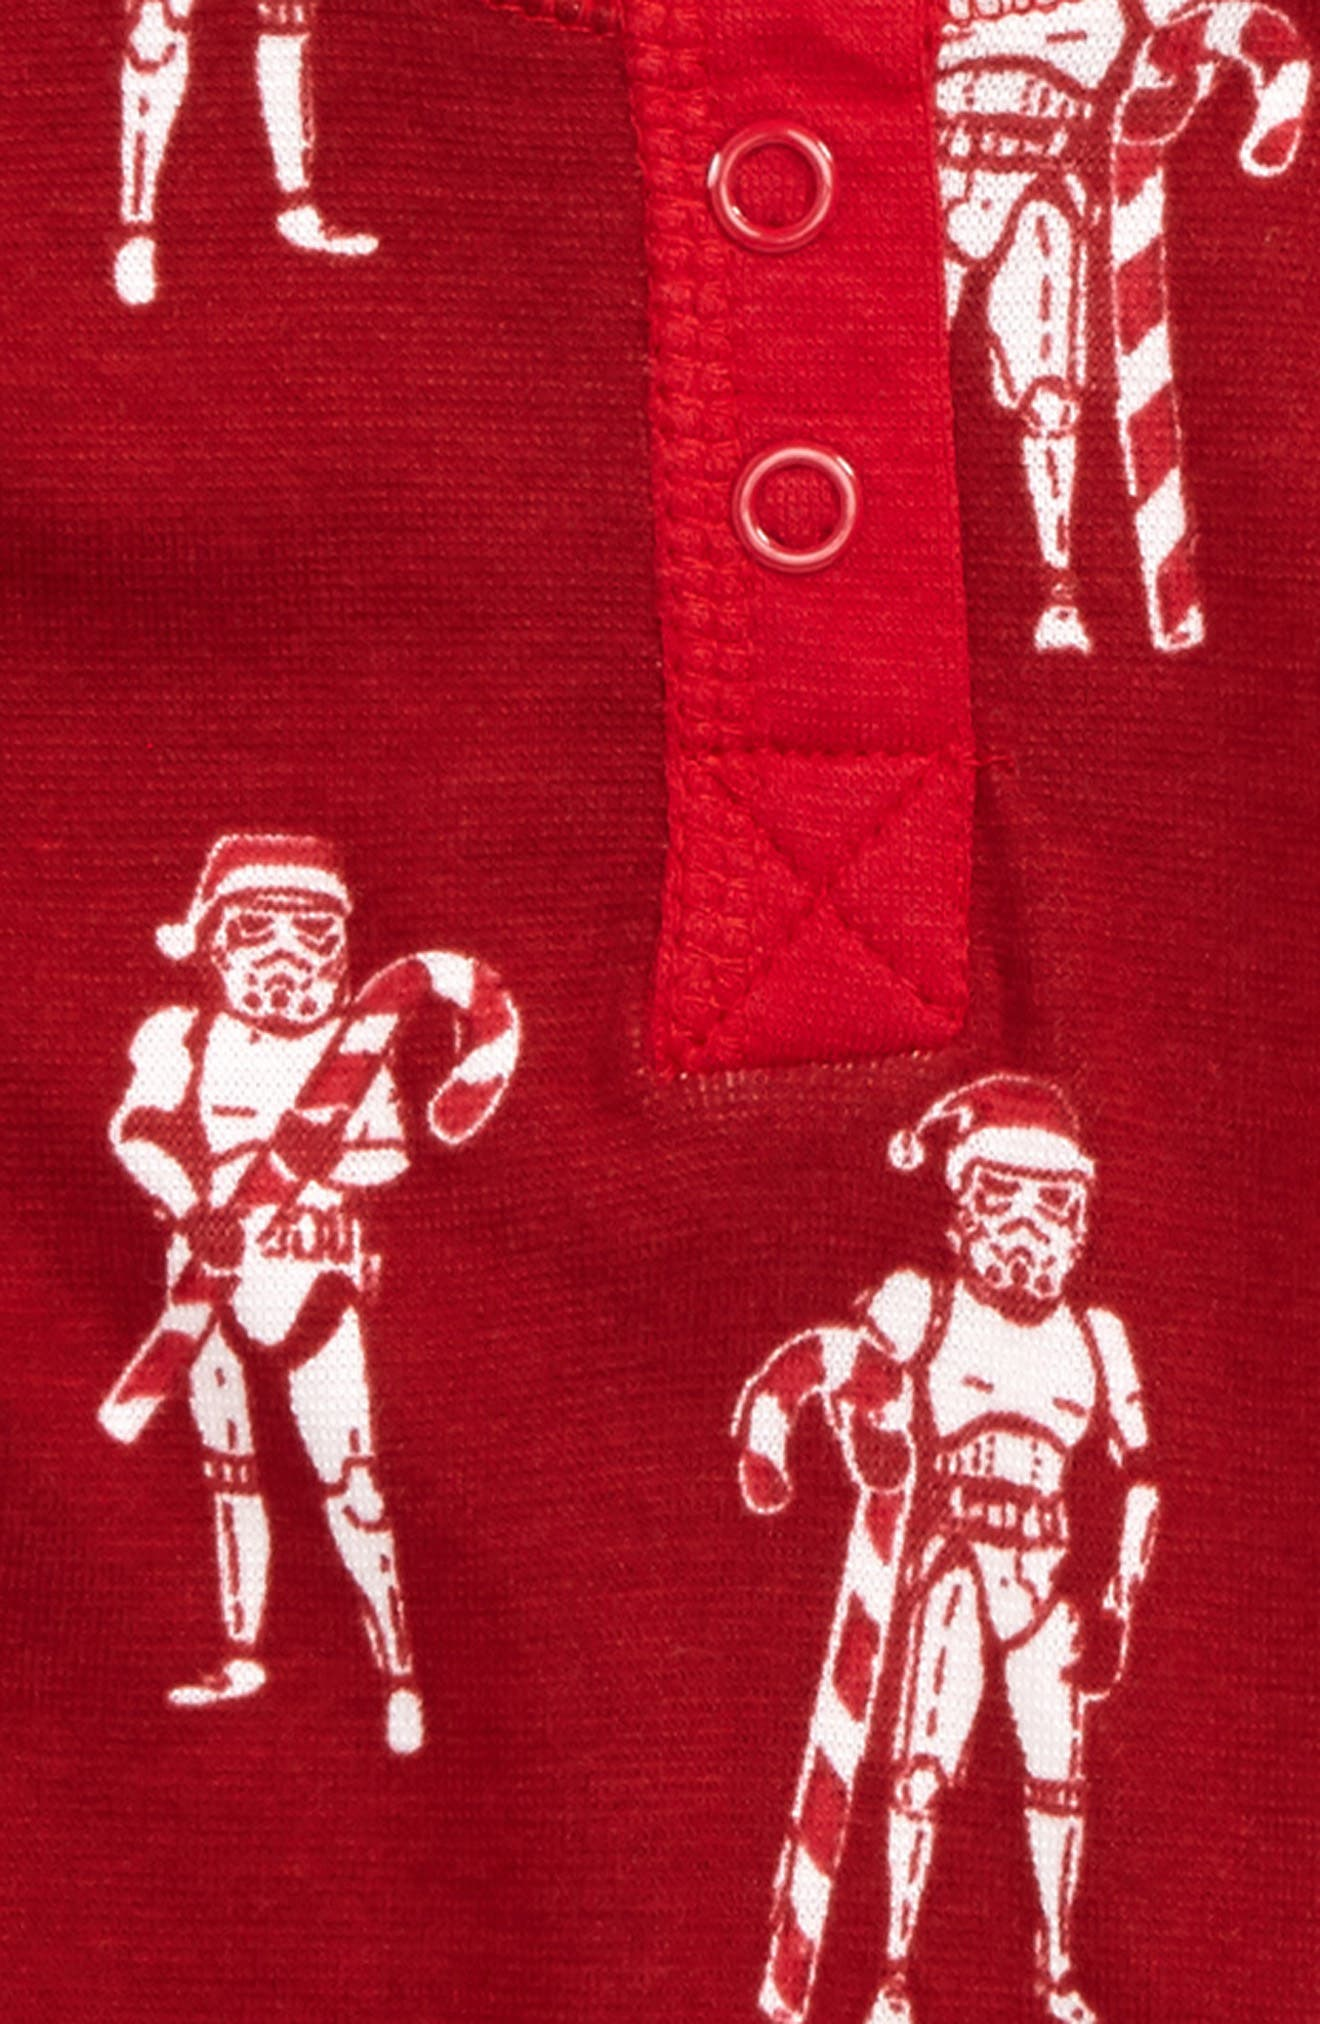 Star Wars<sup>™</sup> - Stormtroopers Fitted Two-Piece Pajamas,                             Alternate thumbnail 2, color,                             Red Storm Troopers